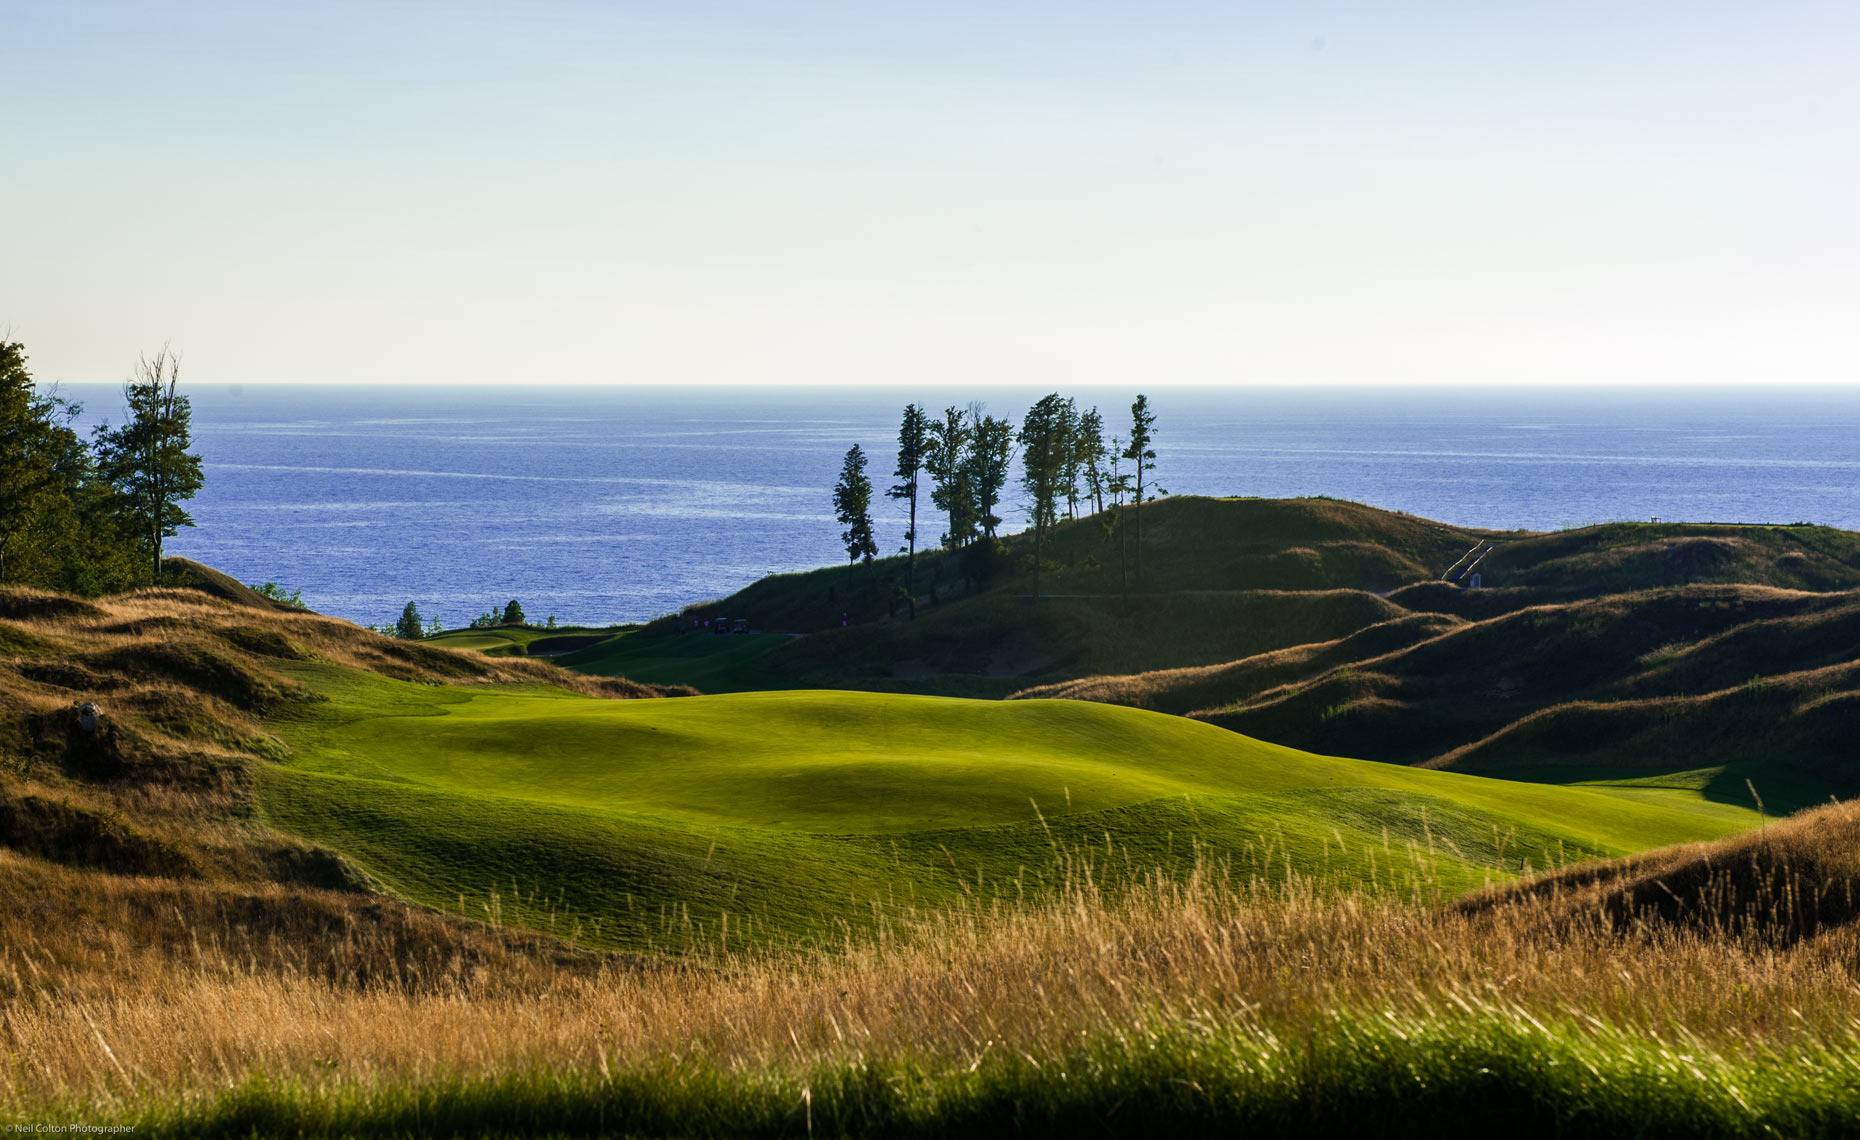 Neil-Colton-lifestyle-photographer-arcadia-bluffs-gc-3